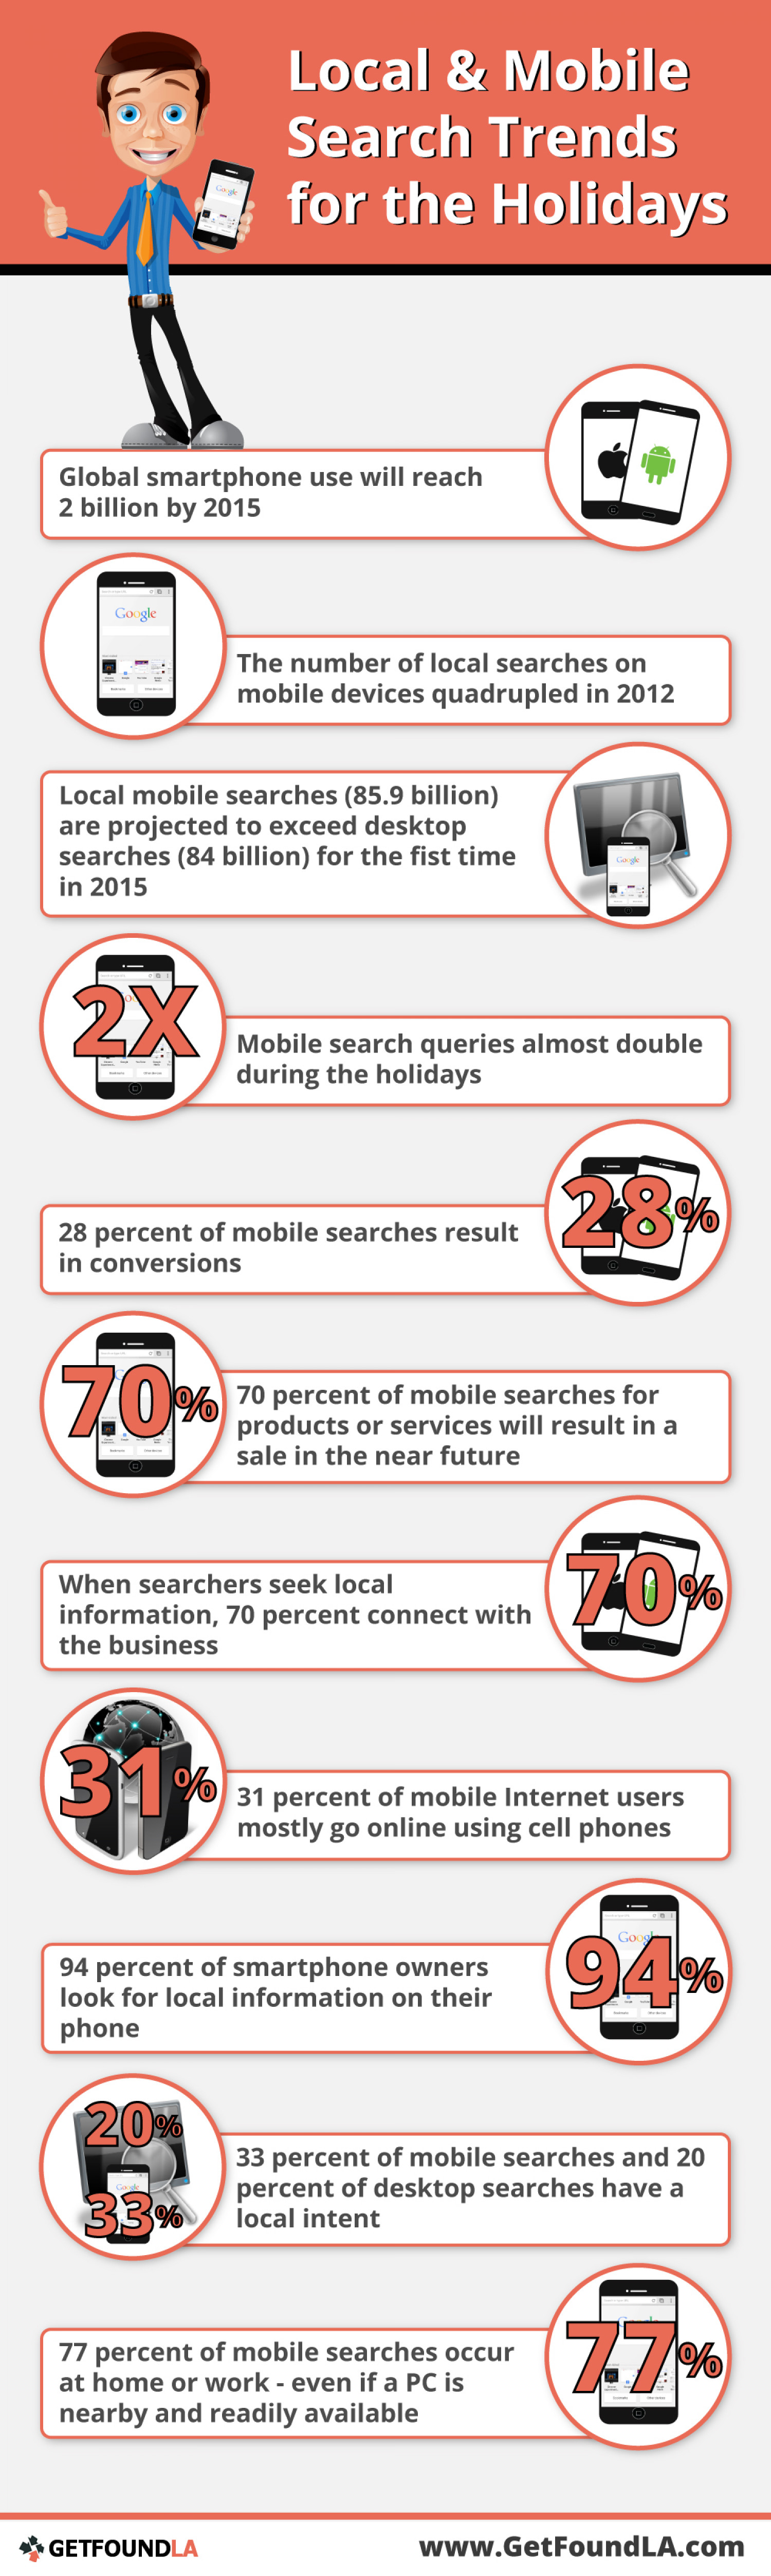 Local & Mobile Search Trends for the Holidays Infographic